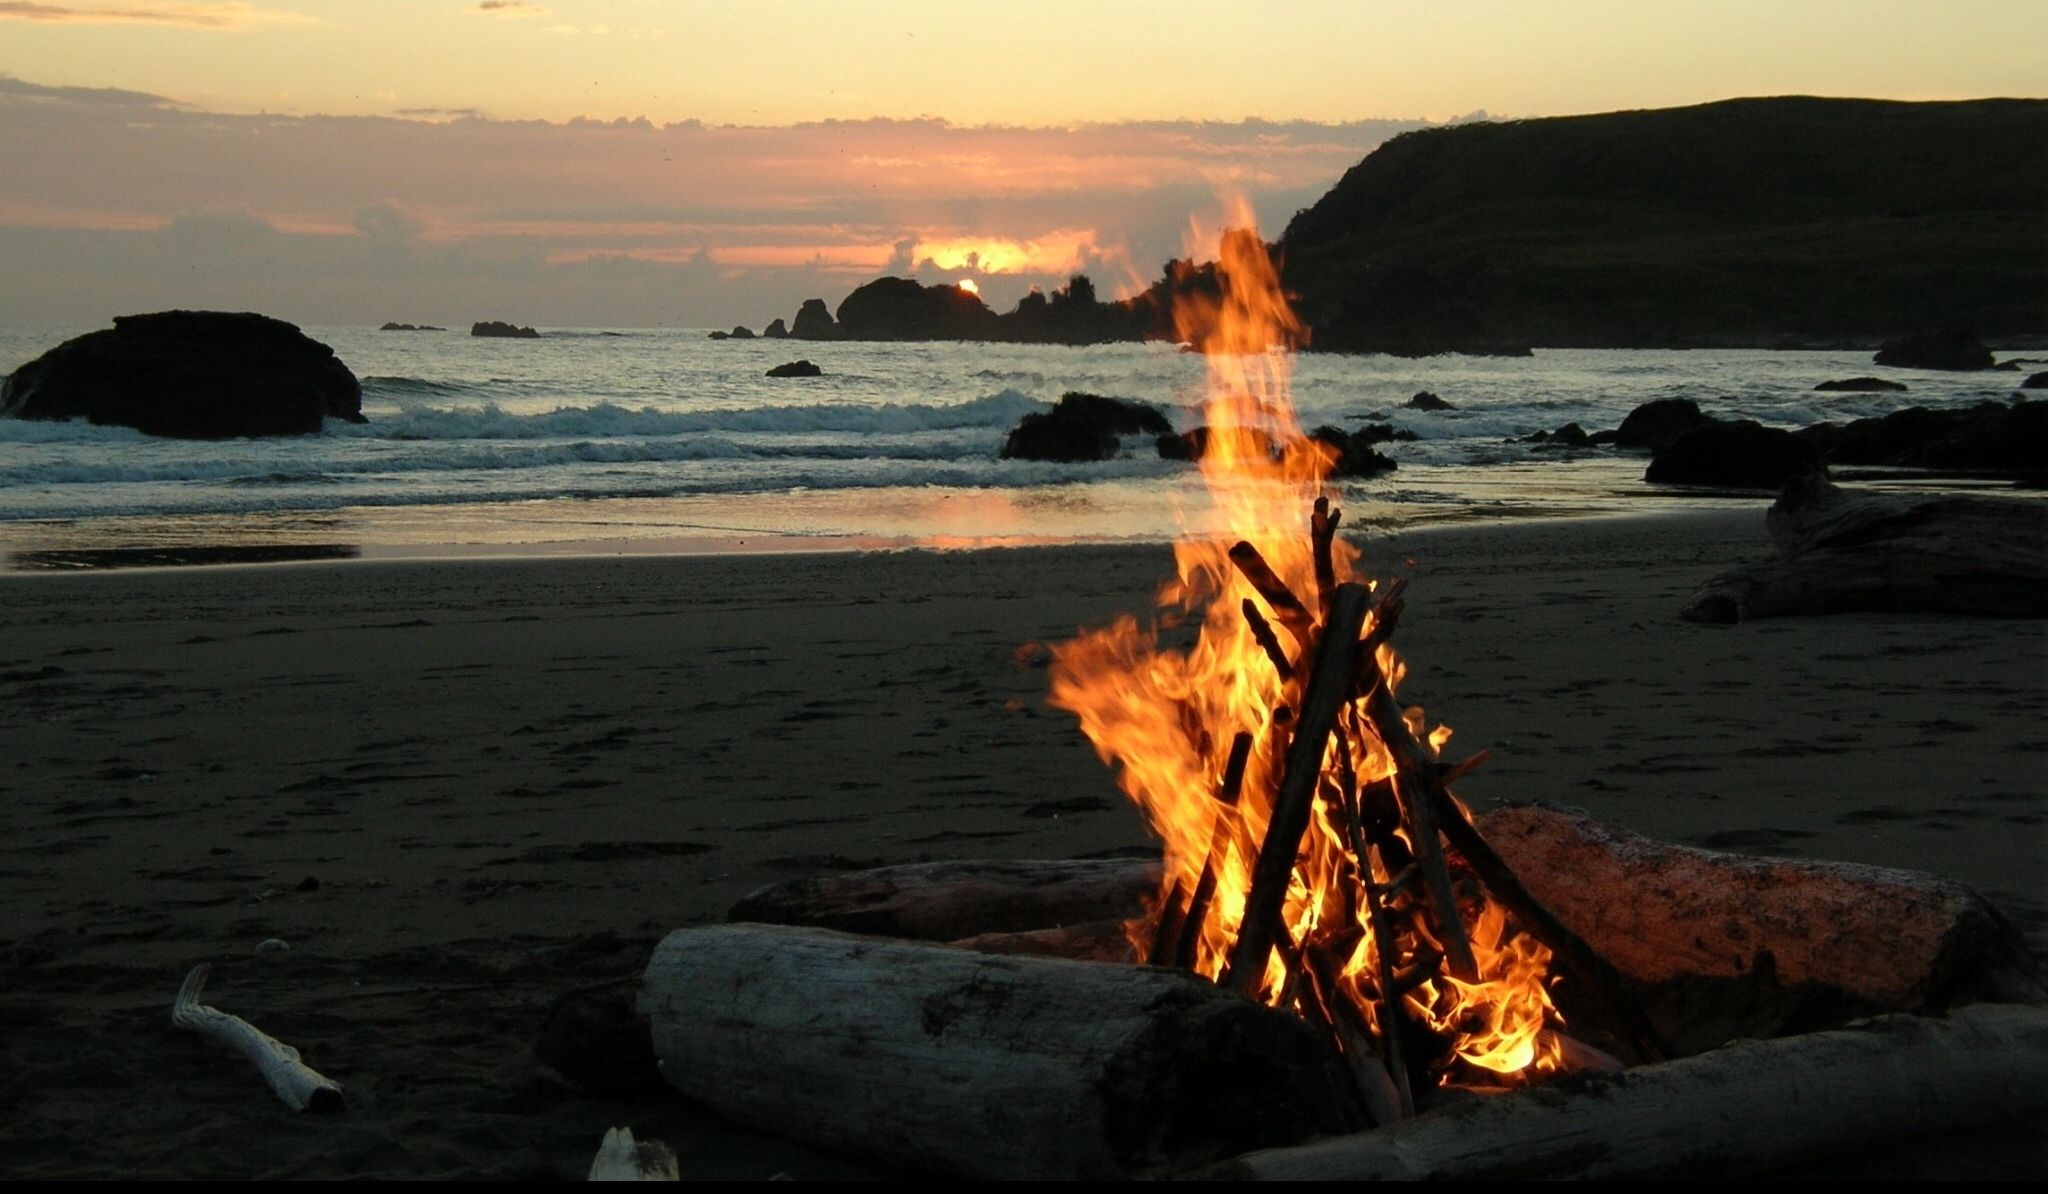 Camino Del Oro La Jolla Upcoming Events La Jolla Shores Beach Bonfire Music Jam And